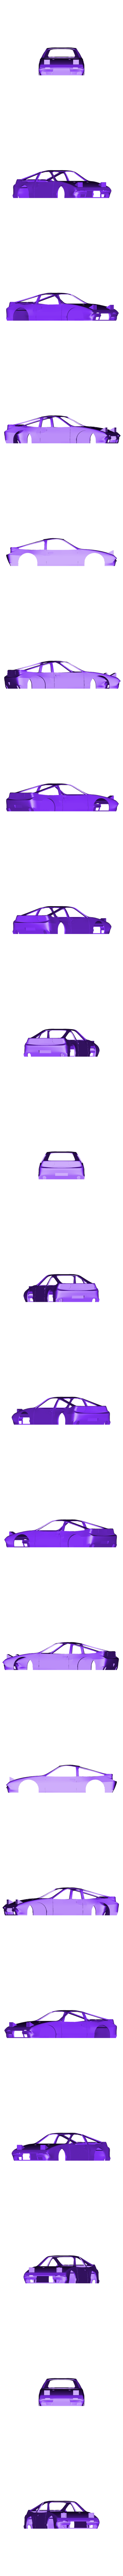 240sx_body.stl Download free STL file 3DRC 1/24 AWD Drift car • Design to 3D print, finhudson16